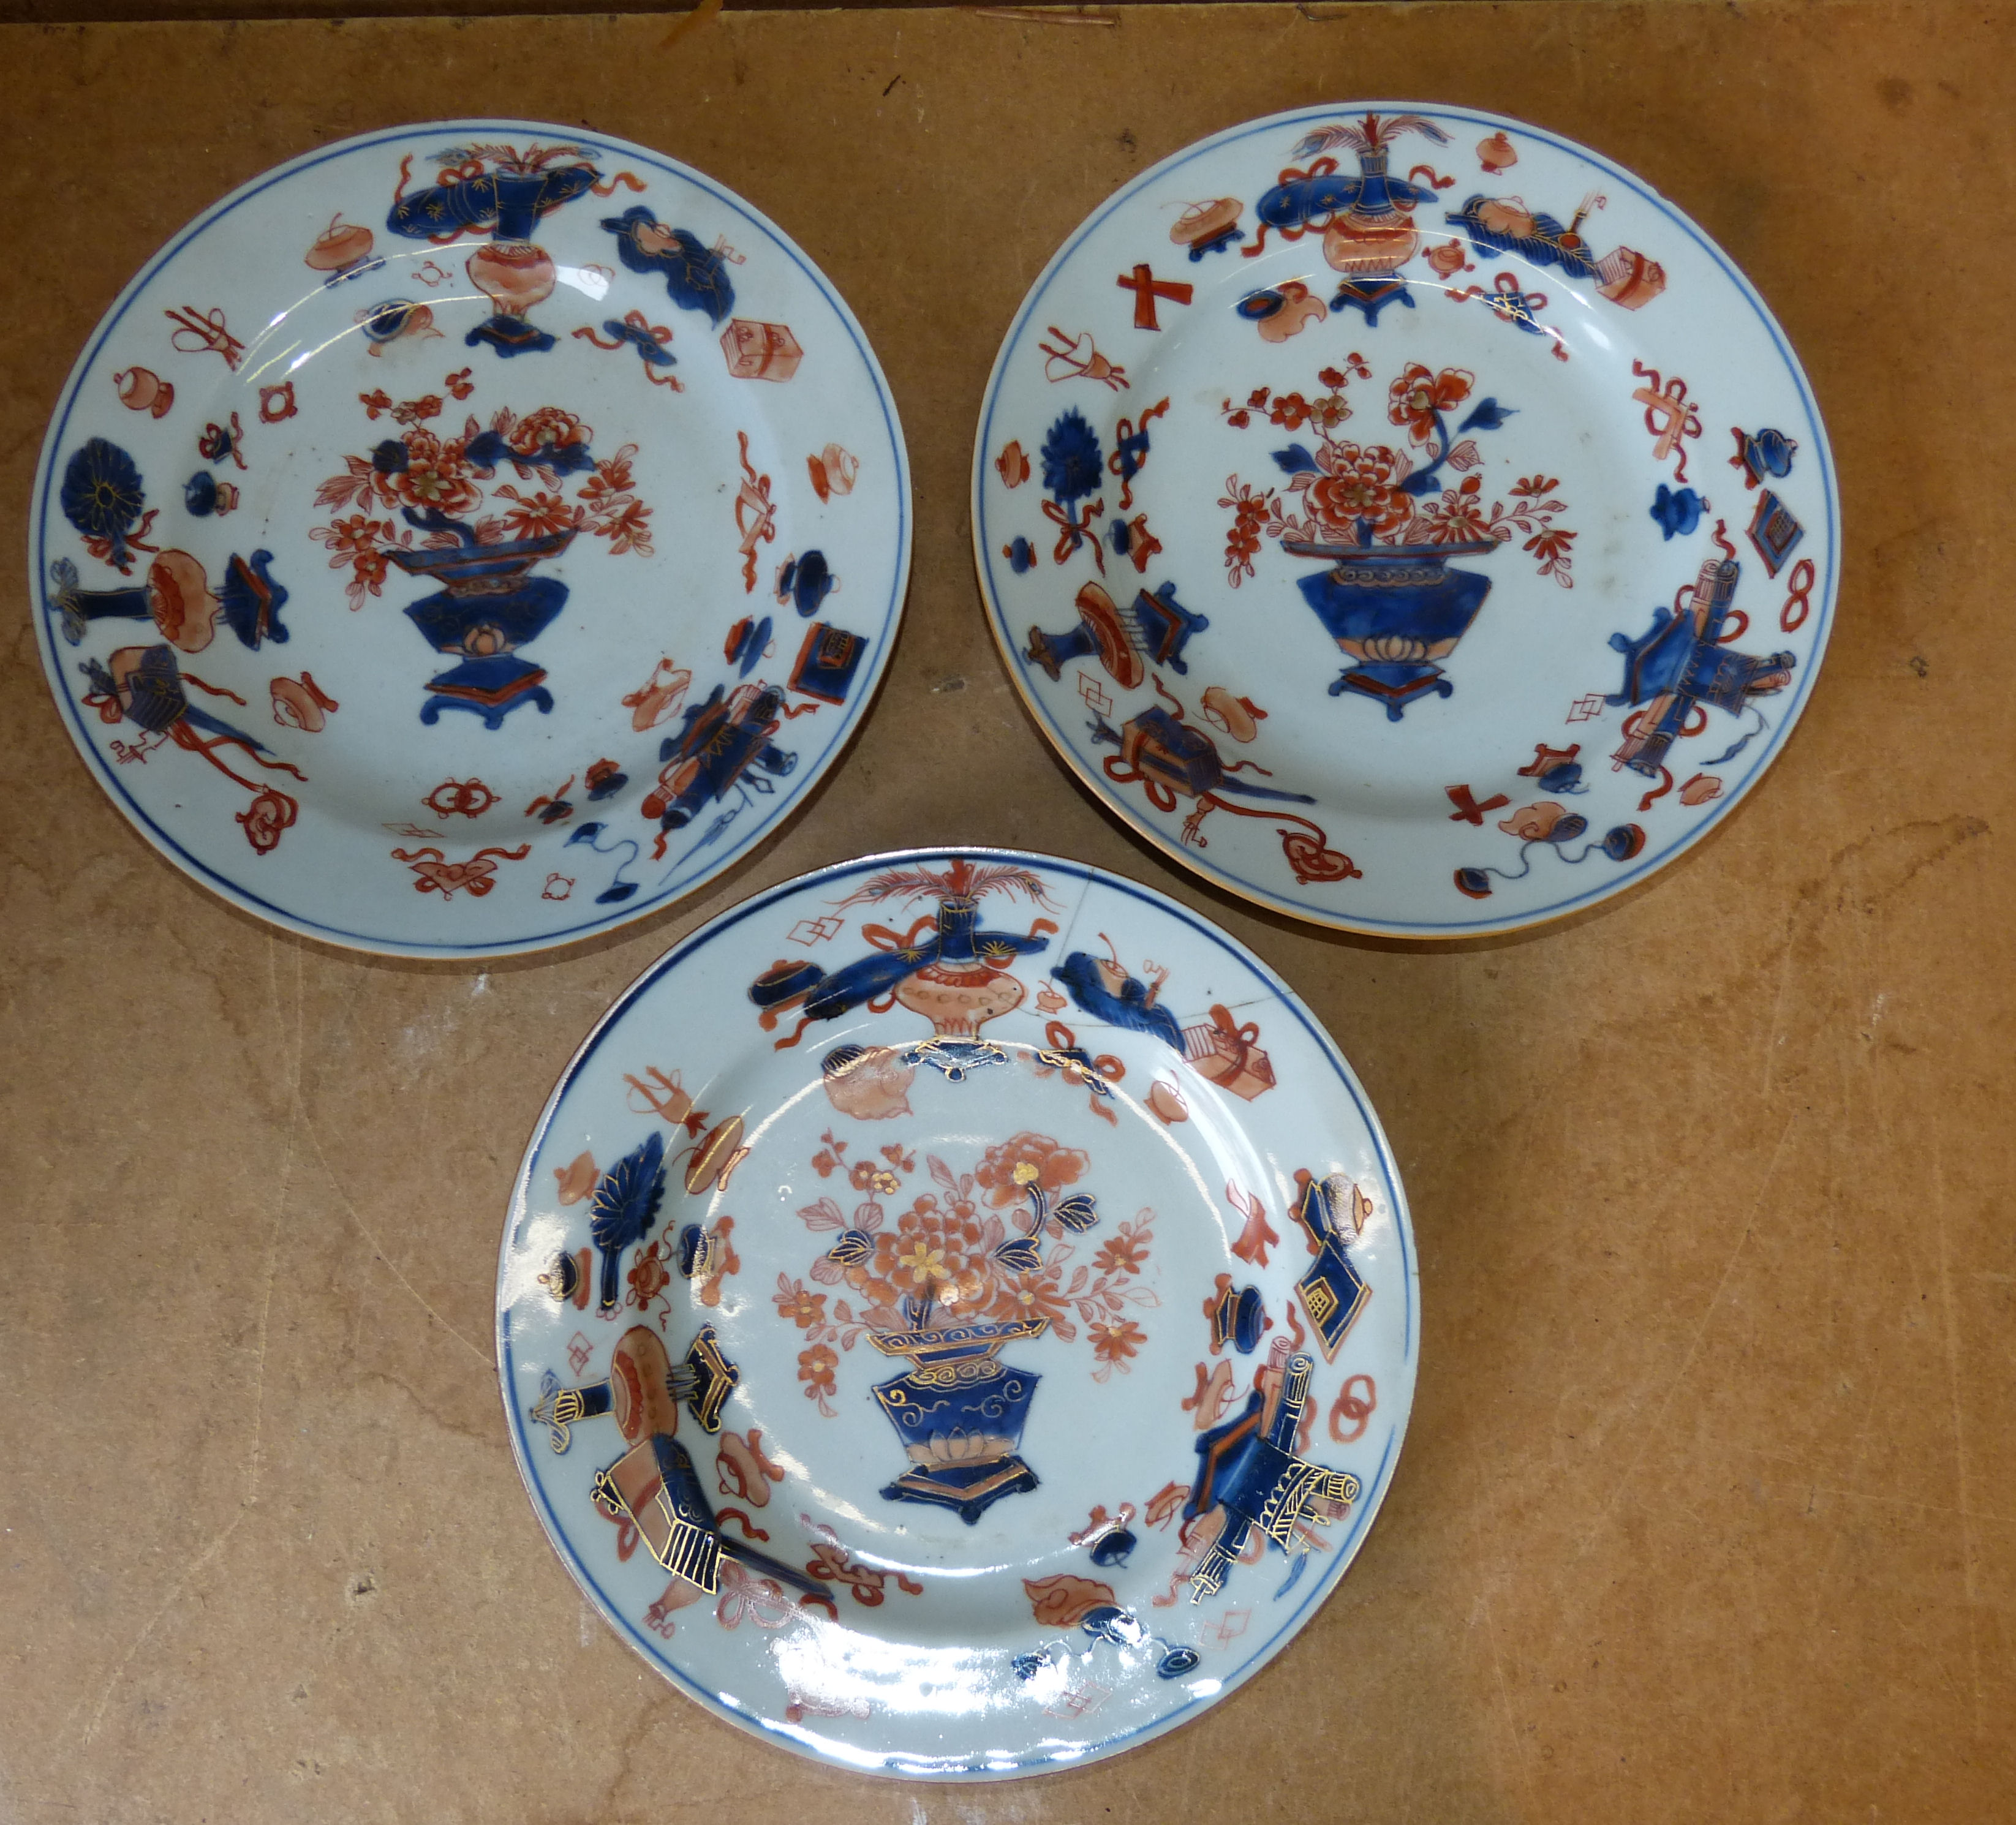 A Set of 3 18th Century Chinese Plates on white